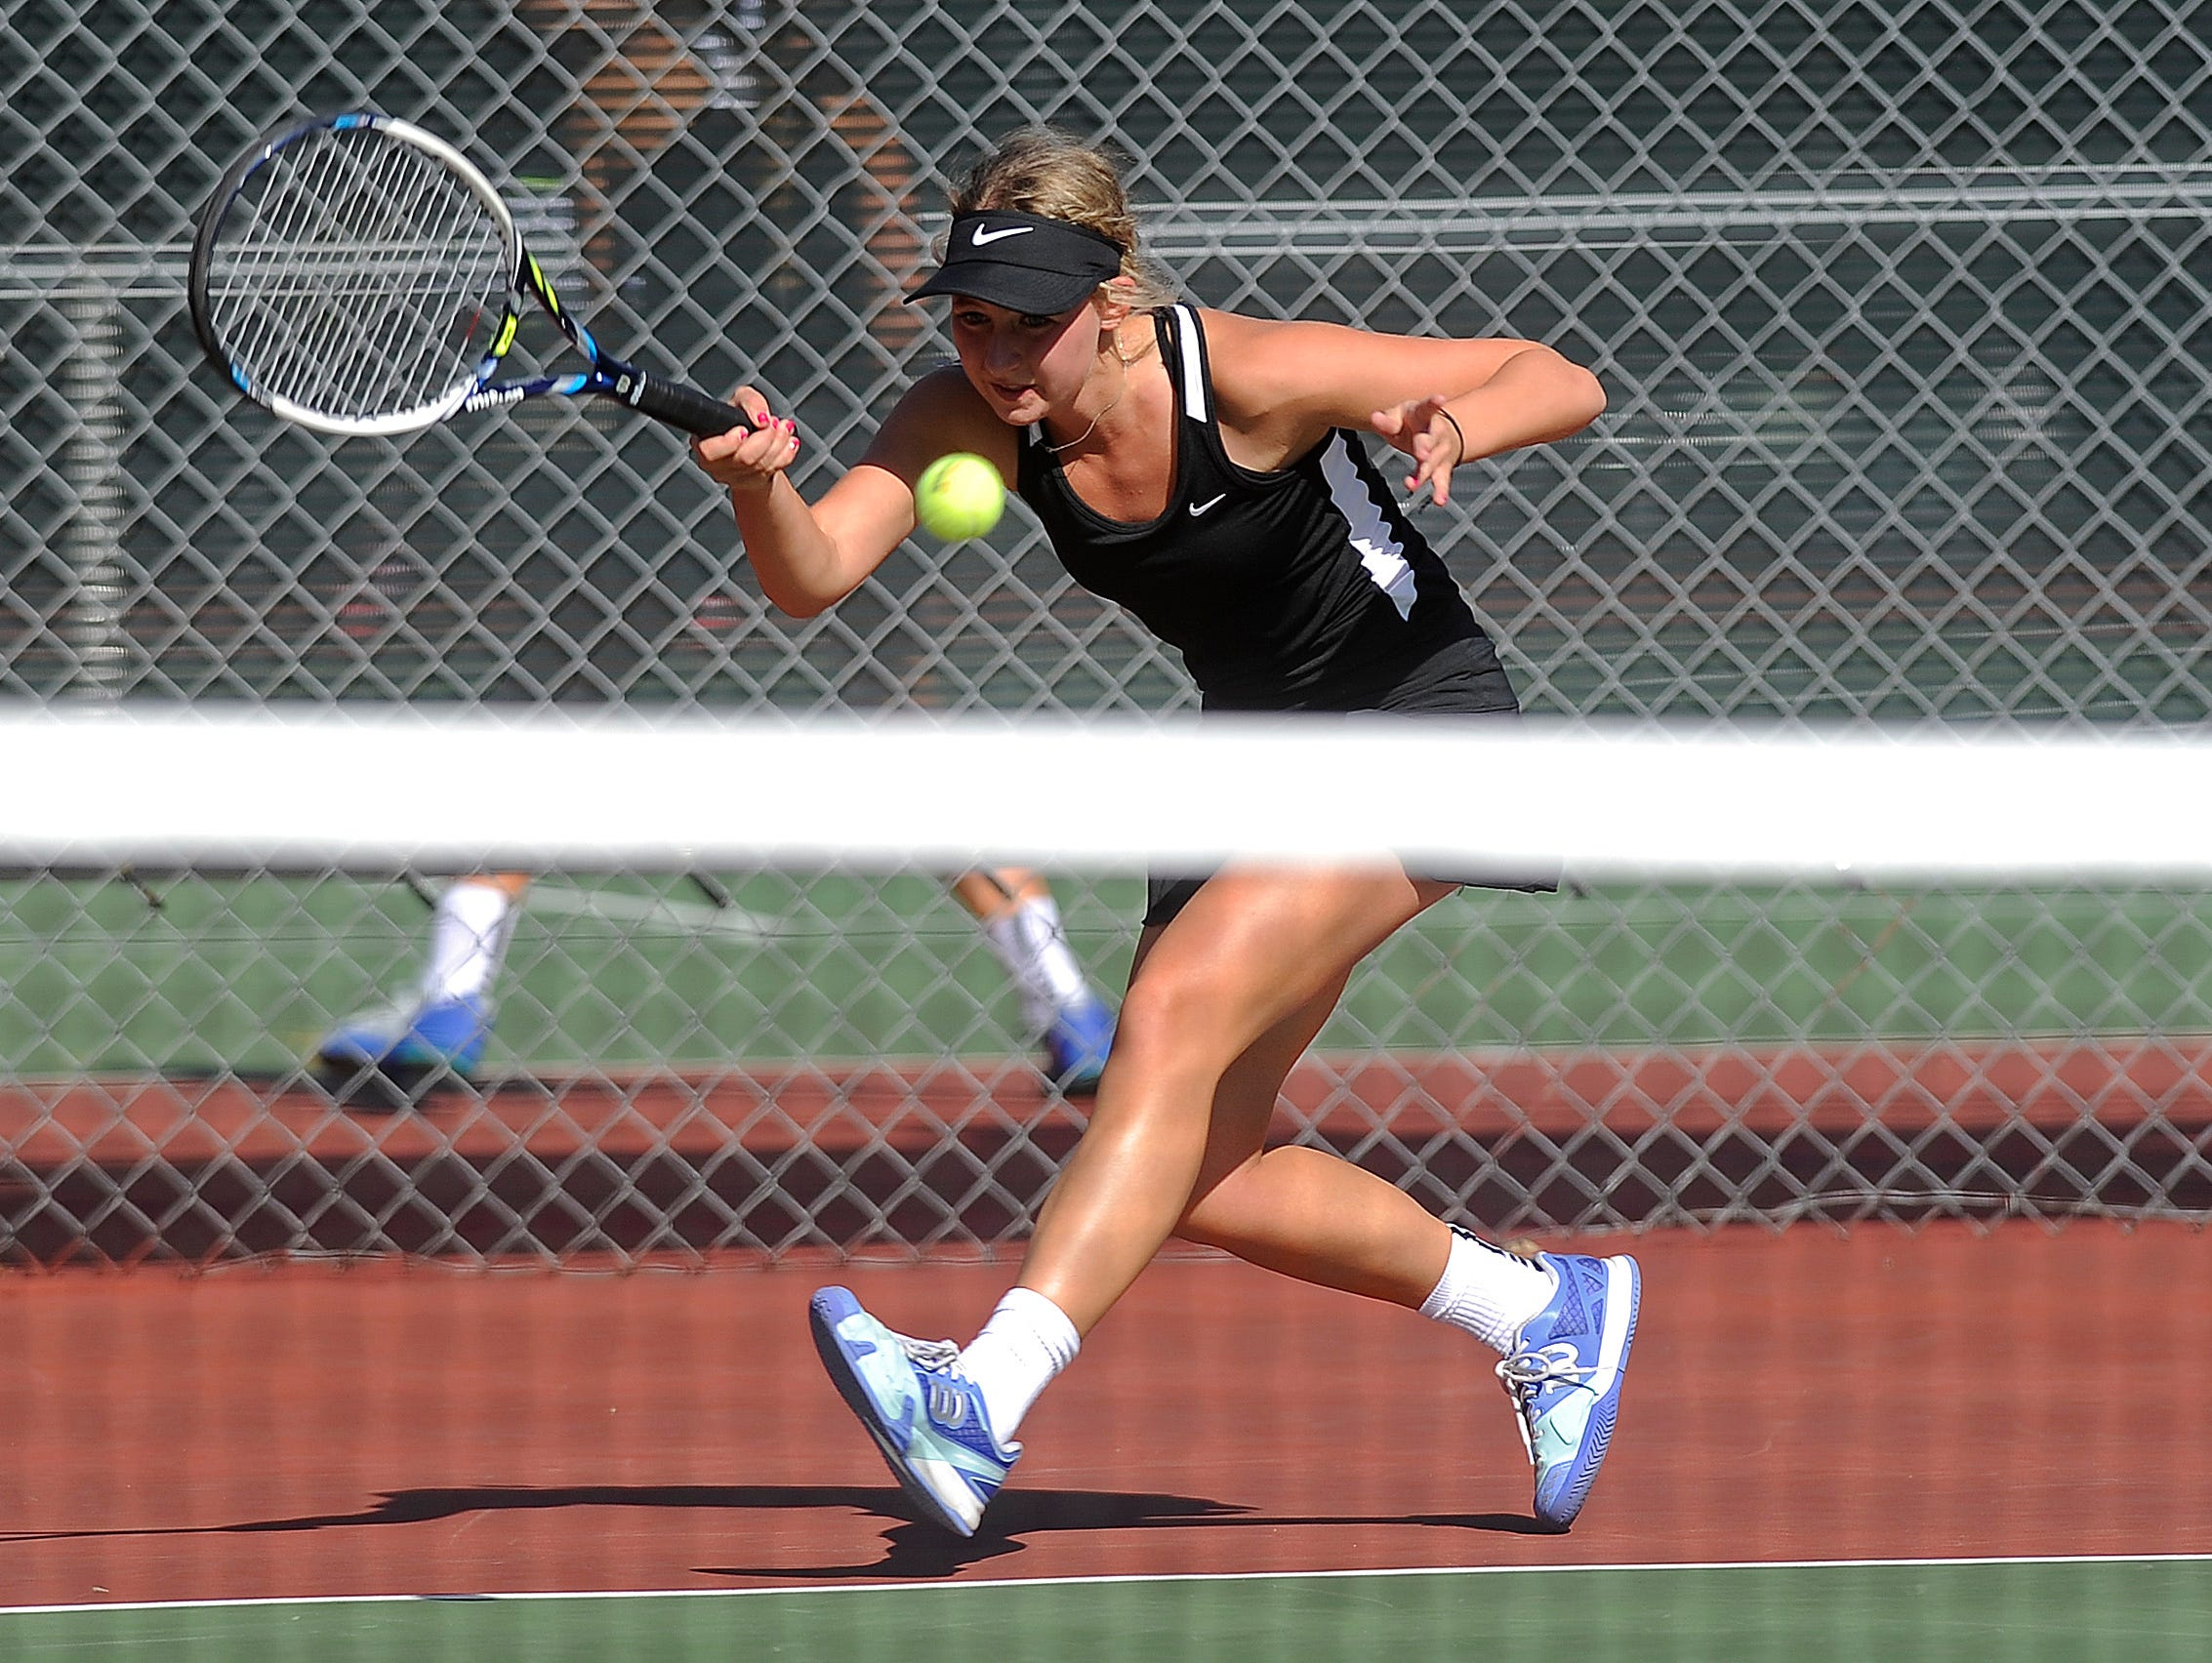 St. Thomas More's Madison Fenske returns the ball to O'Gorman's Danielle Sebata during the singles championship finals of the SD high school girls state tennis tournament at McKennan Park in Sioux Falls, SD; Saturday, Oct. 10, 2015.